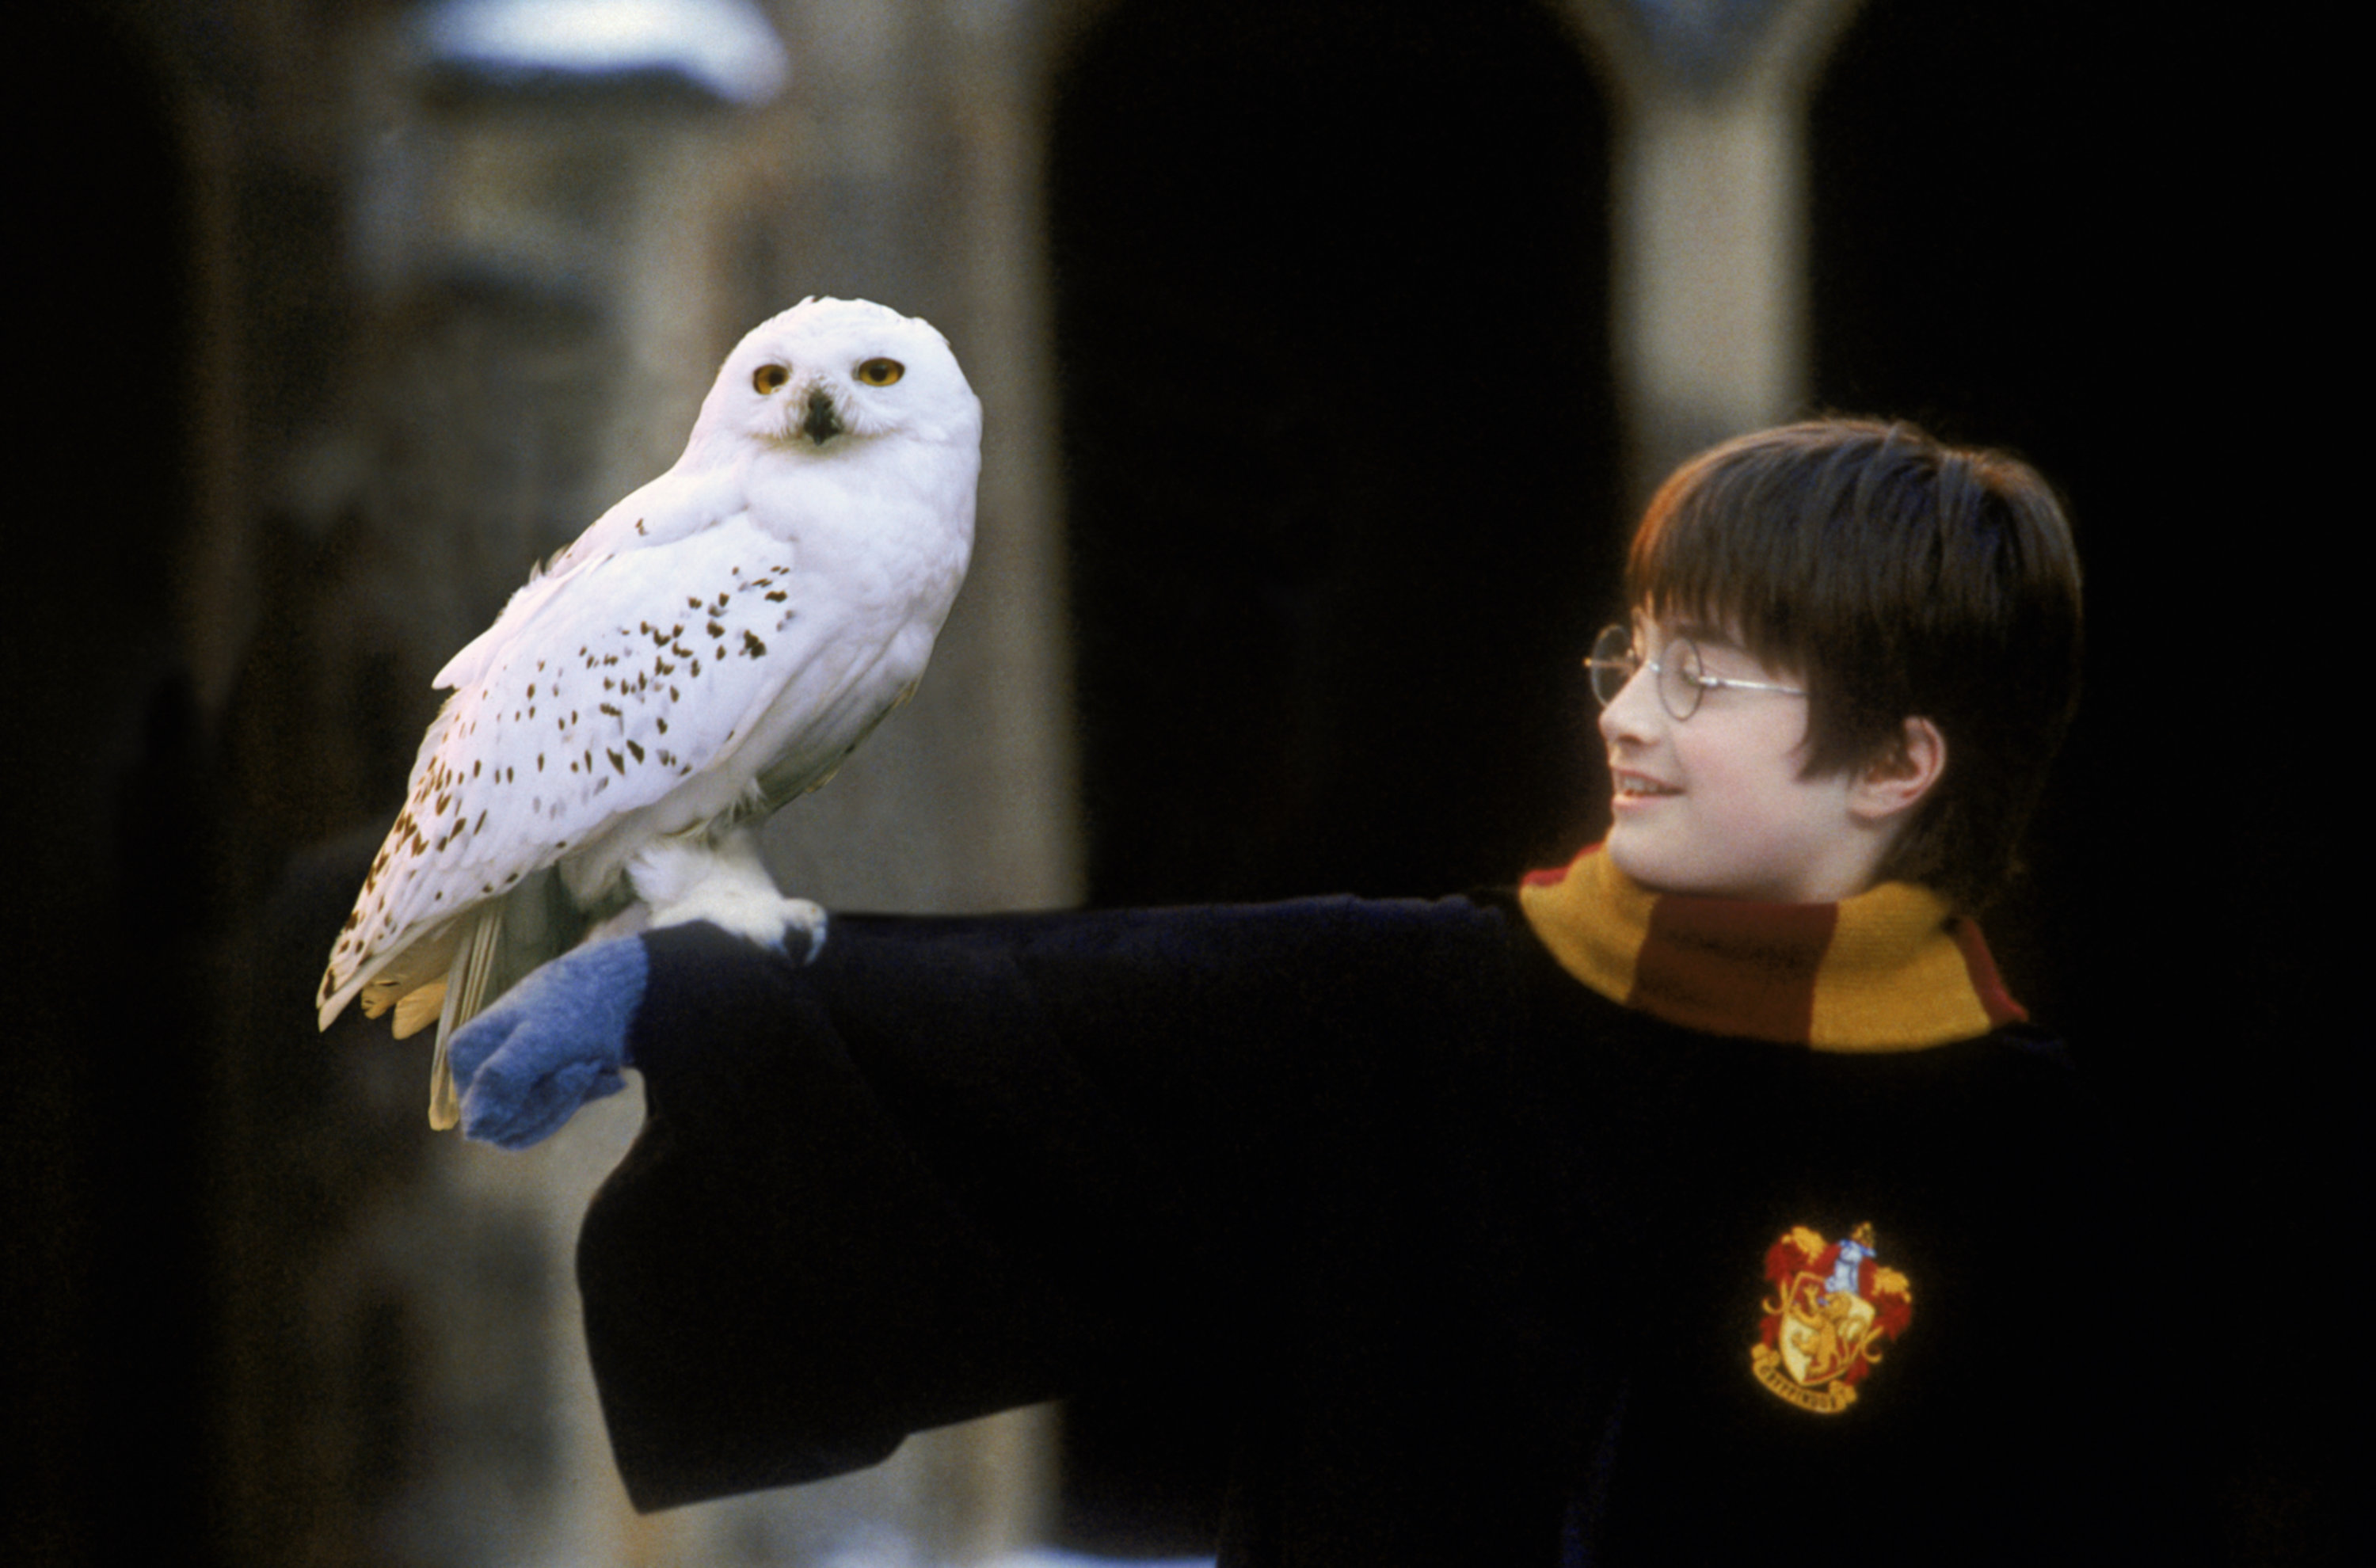 Harry holds Hedwig on his arm in Hogwarts courtyard